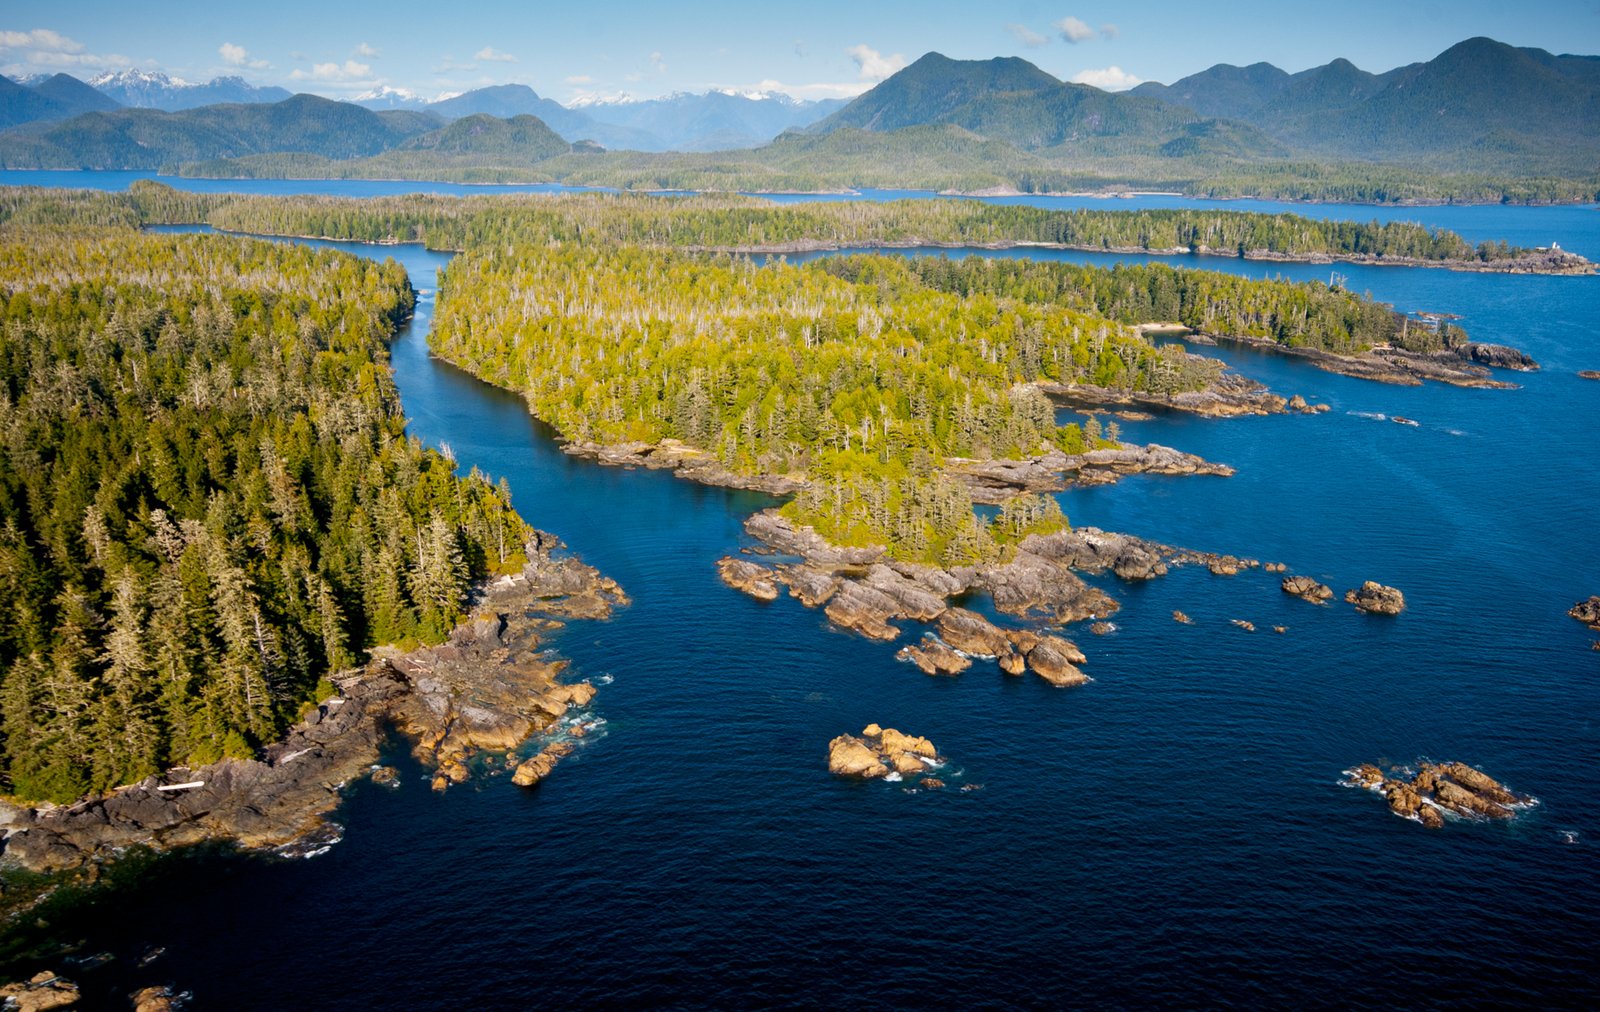 TNC is working in partnership with local Indigenous communities to conserve old-growth forest along British Columbia's southern coast in Clayoquot Sound. Photo by Bryan Evans.